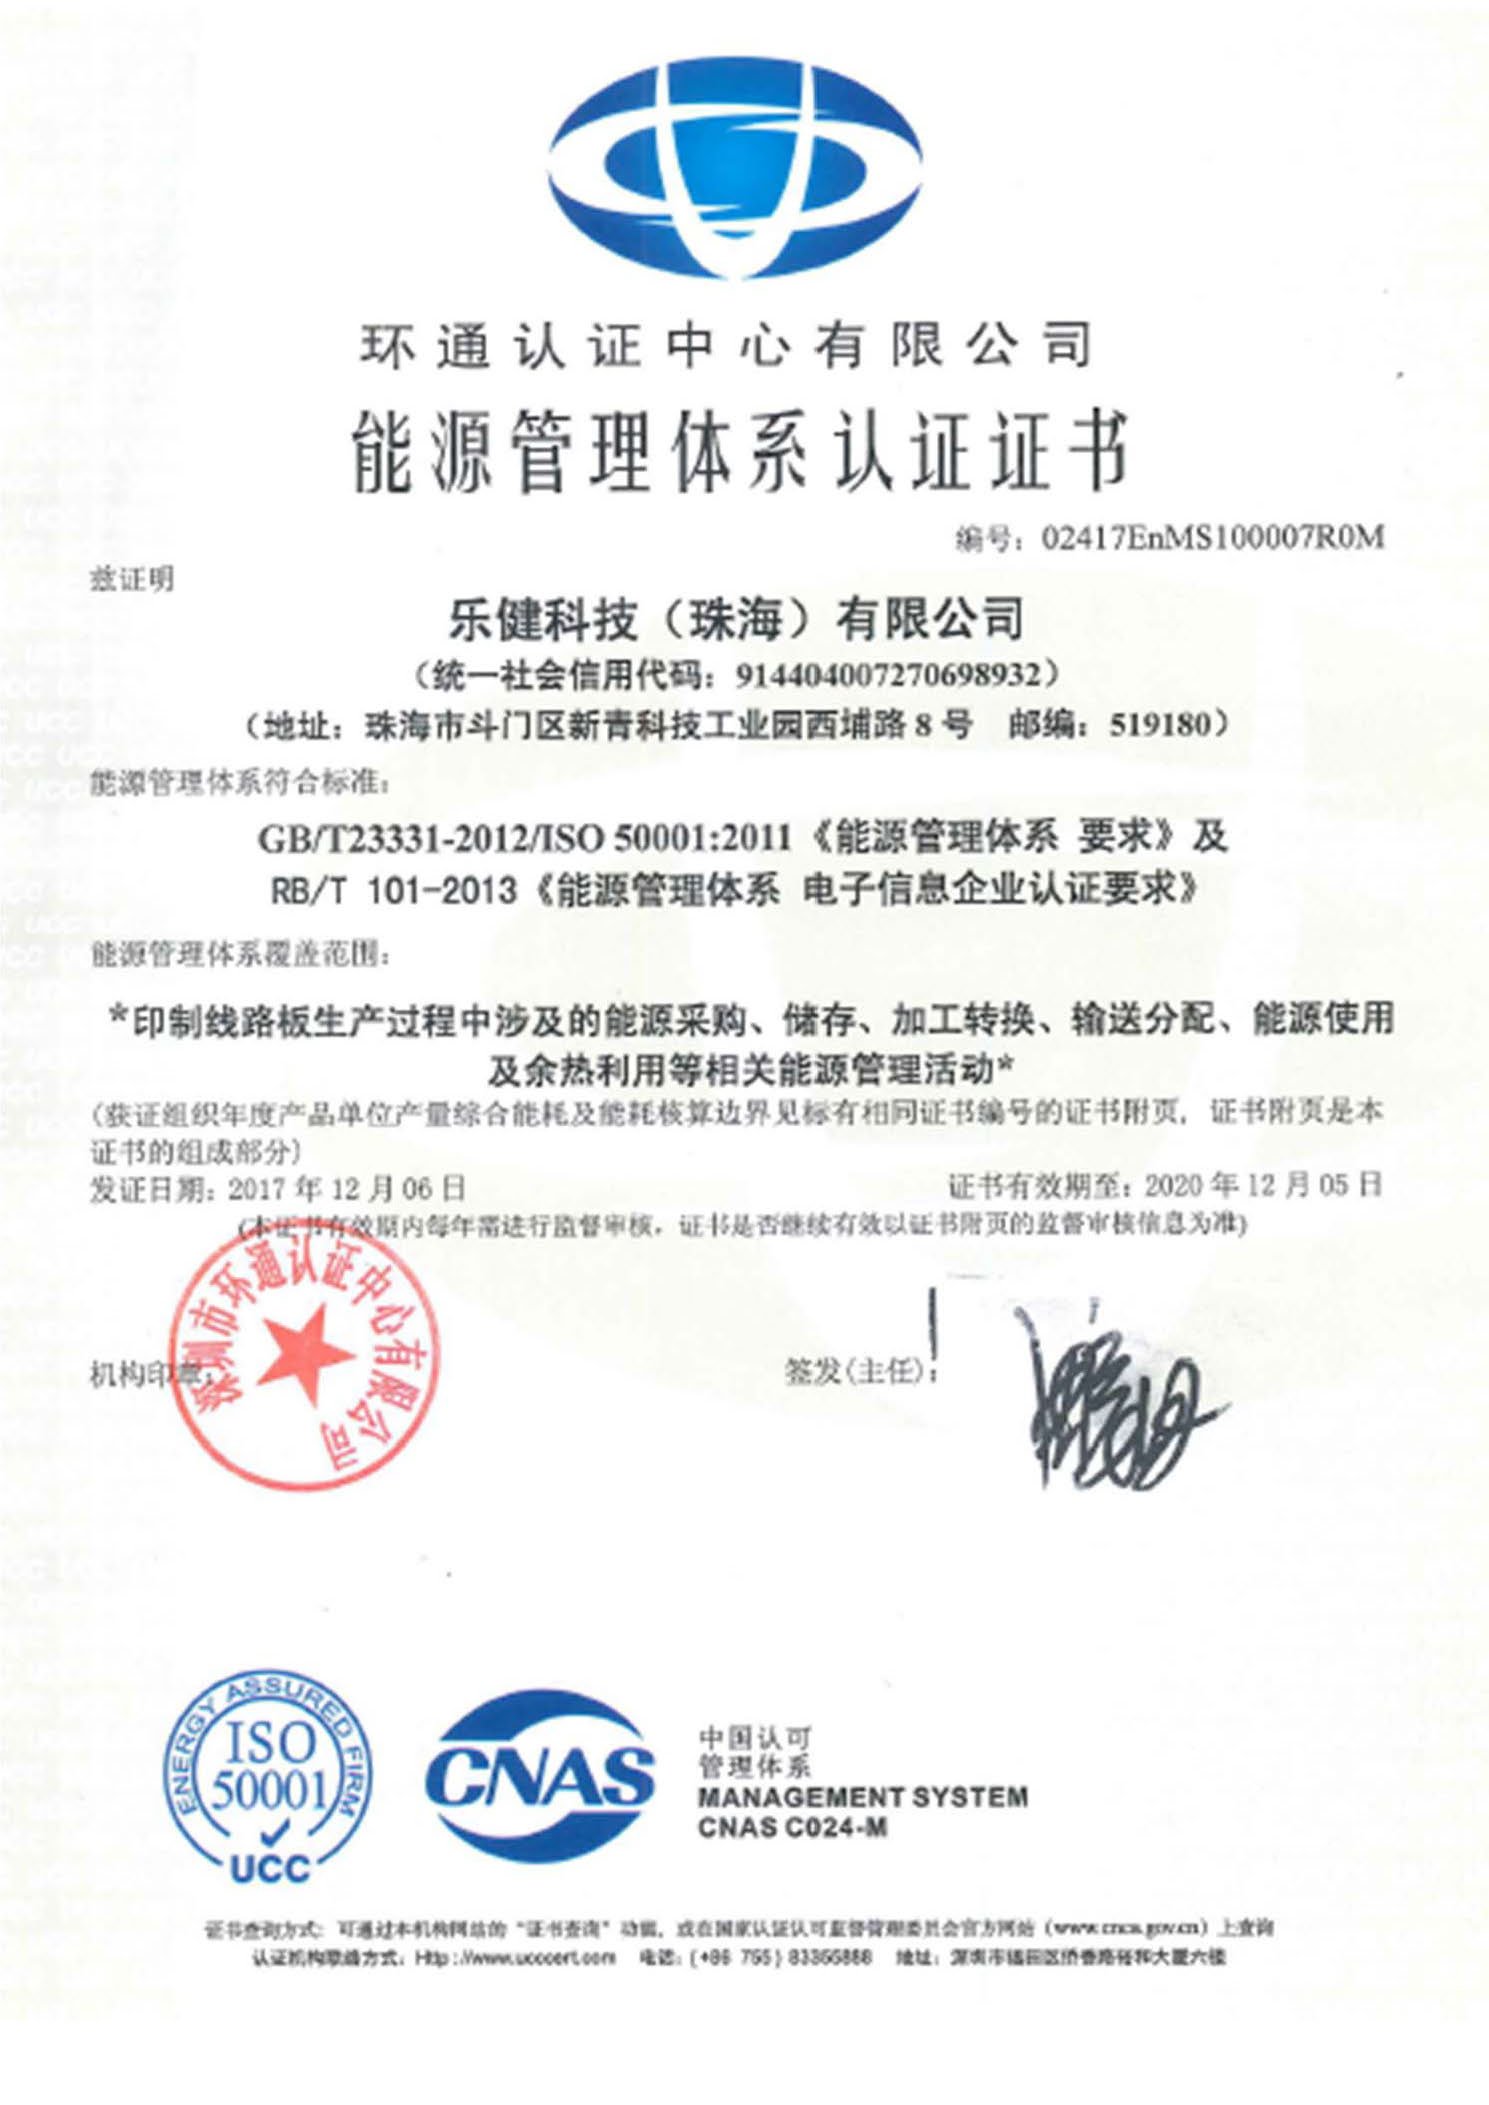 The energy management system certificate